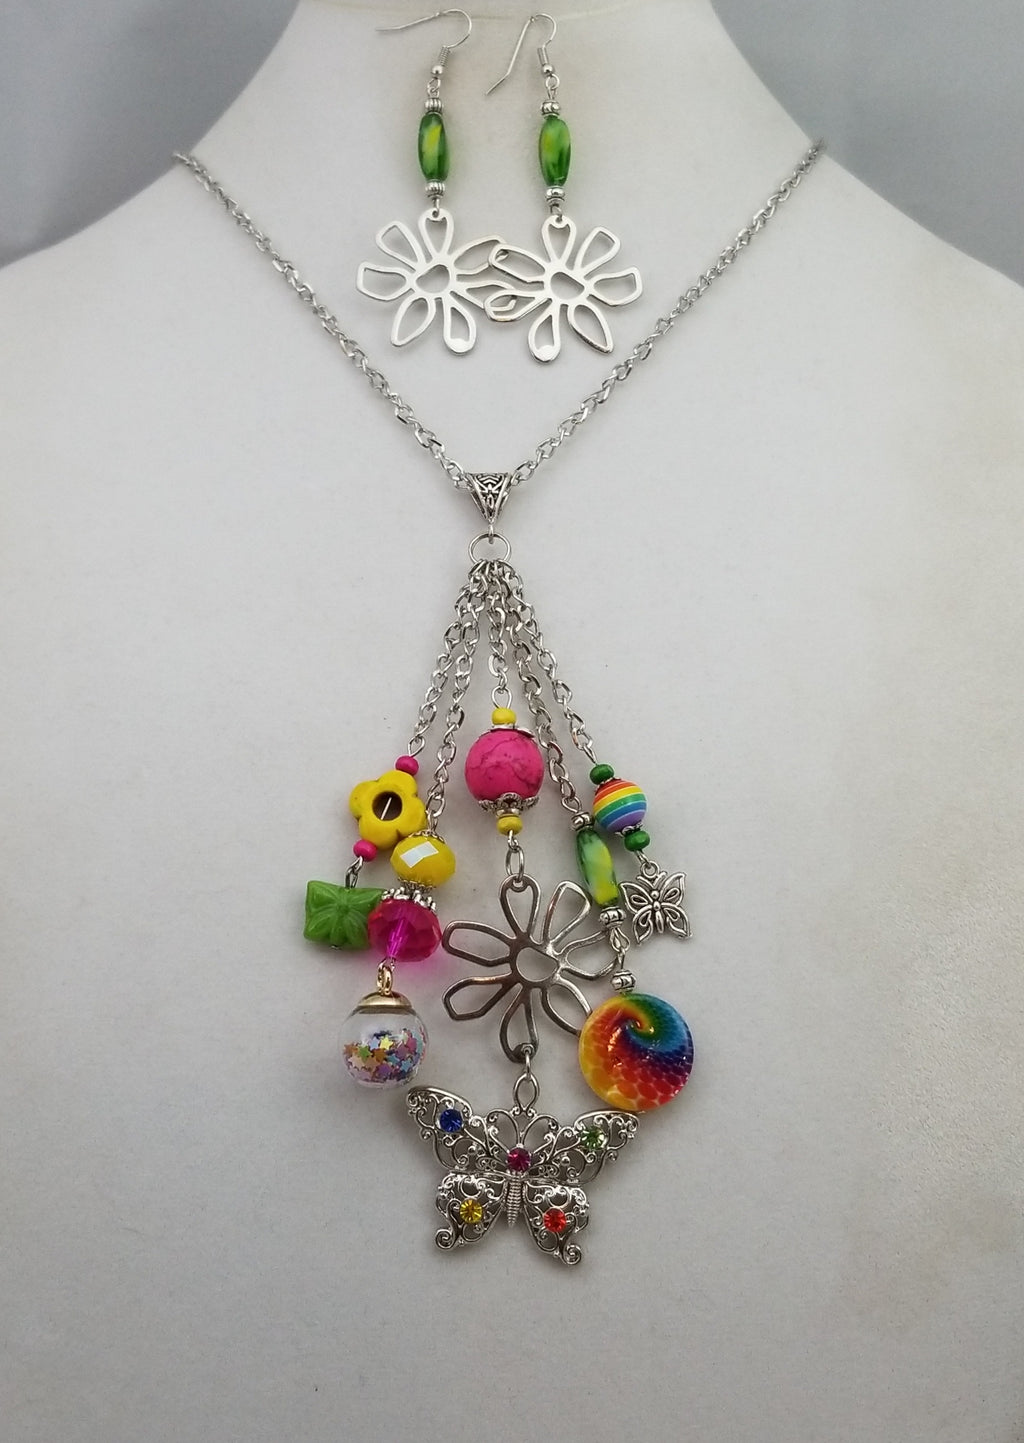 Tuti Fruiti Butterfly Necklace with Earrings